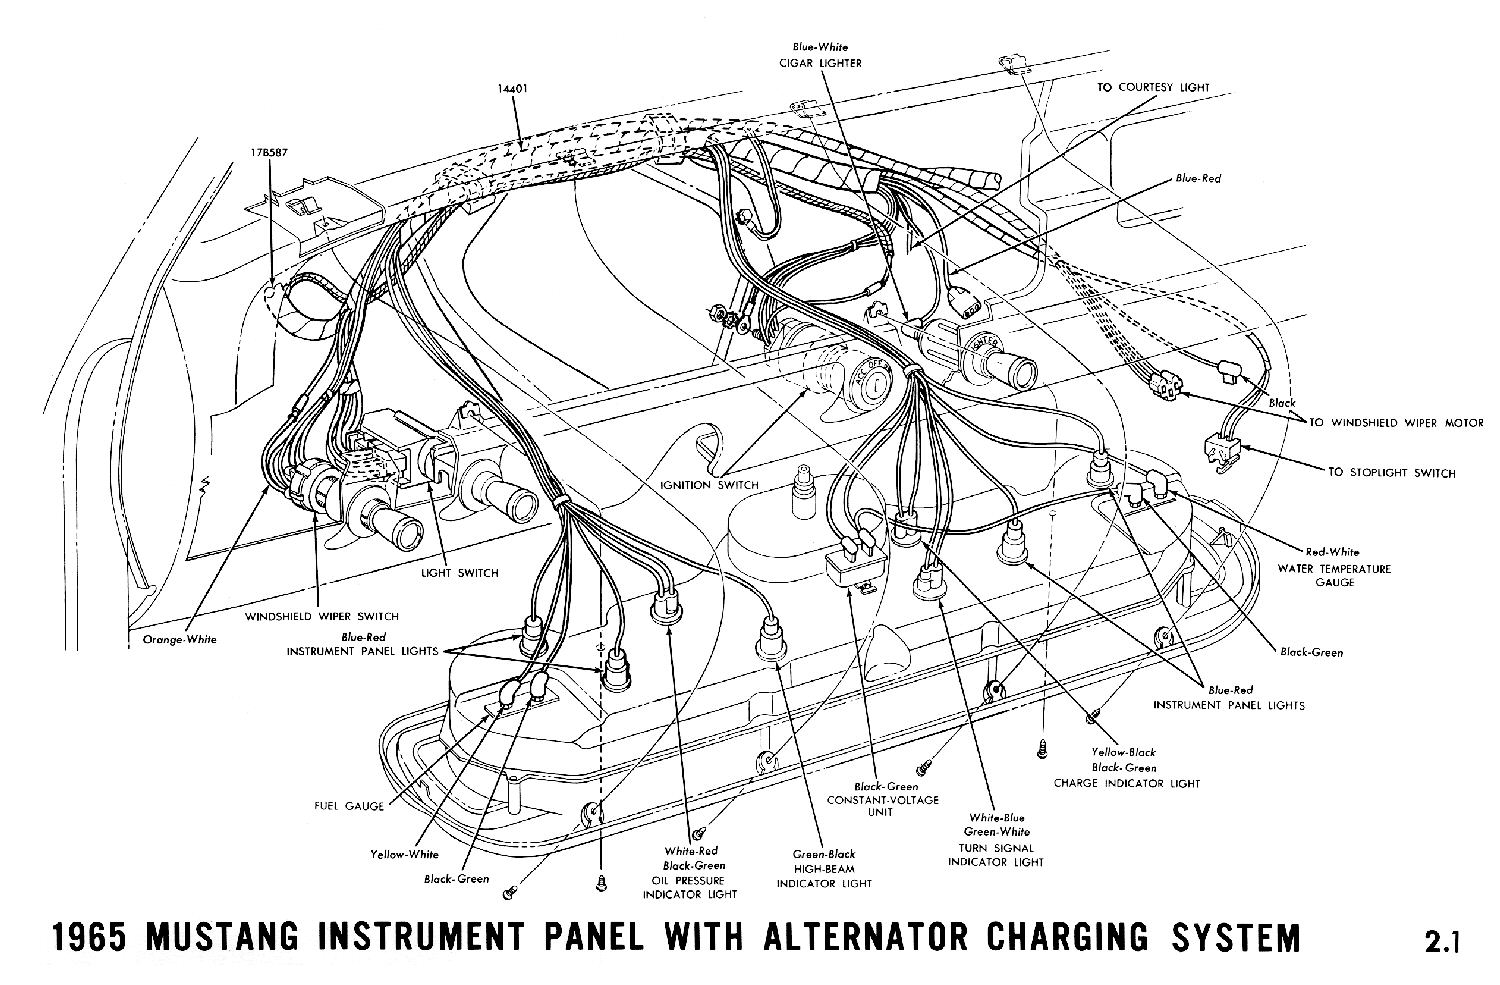 hight resolution of 1965a 1965 mustang instrument panel with alternator